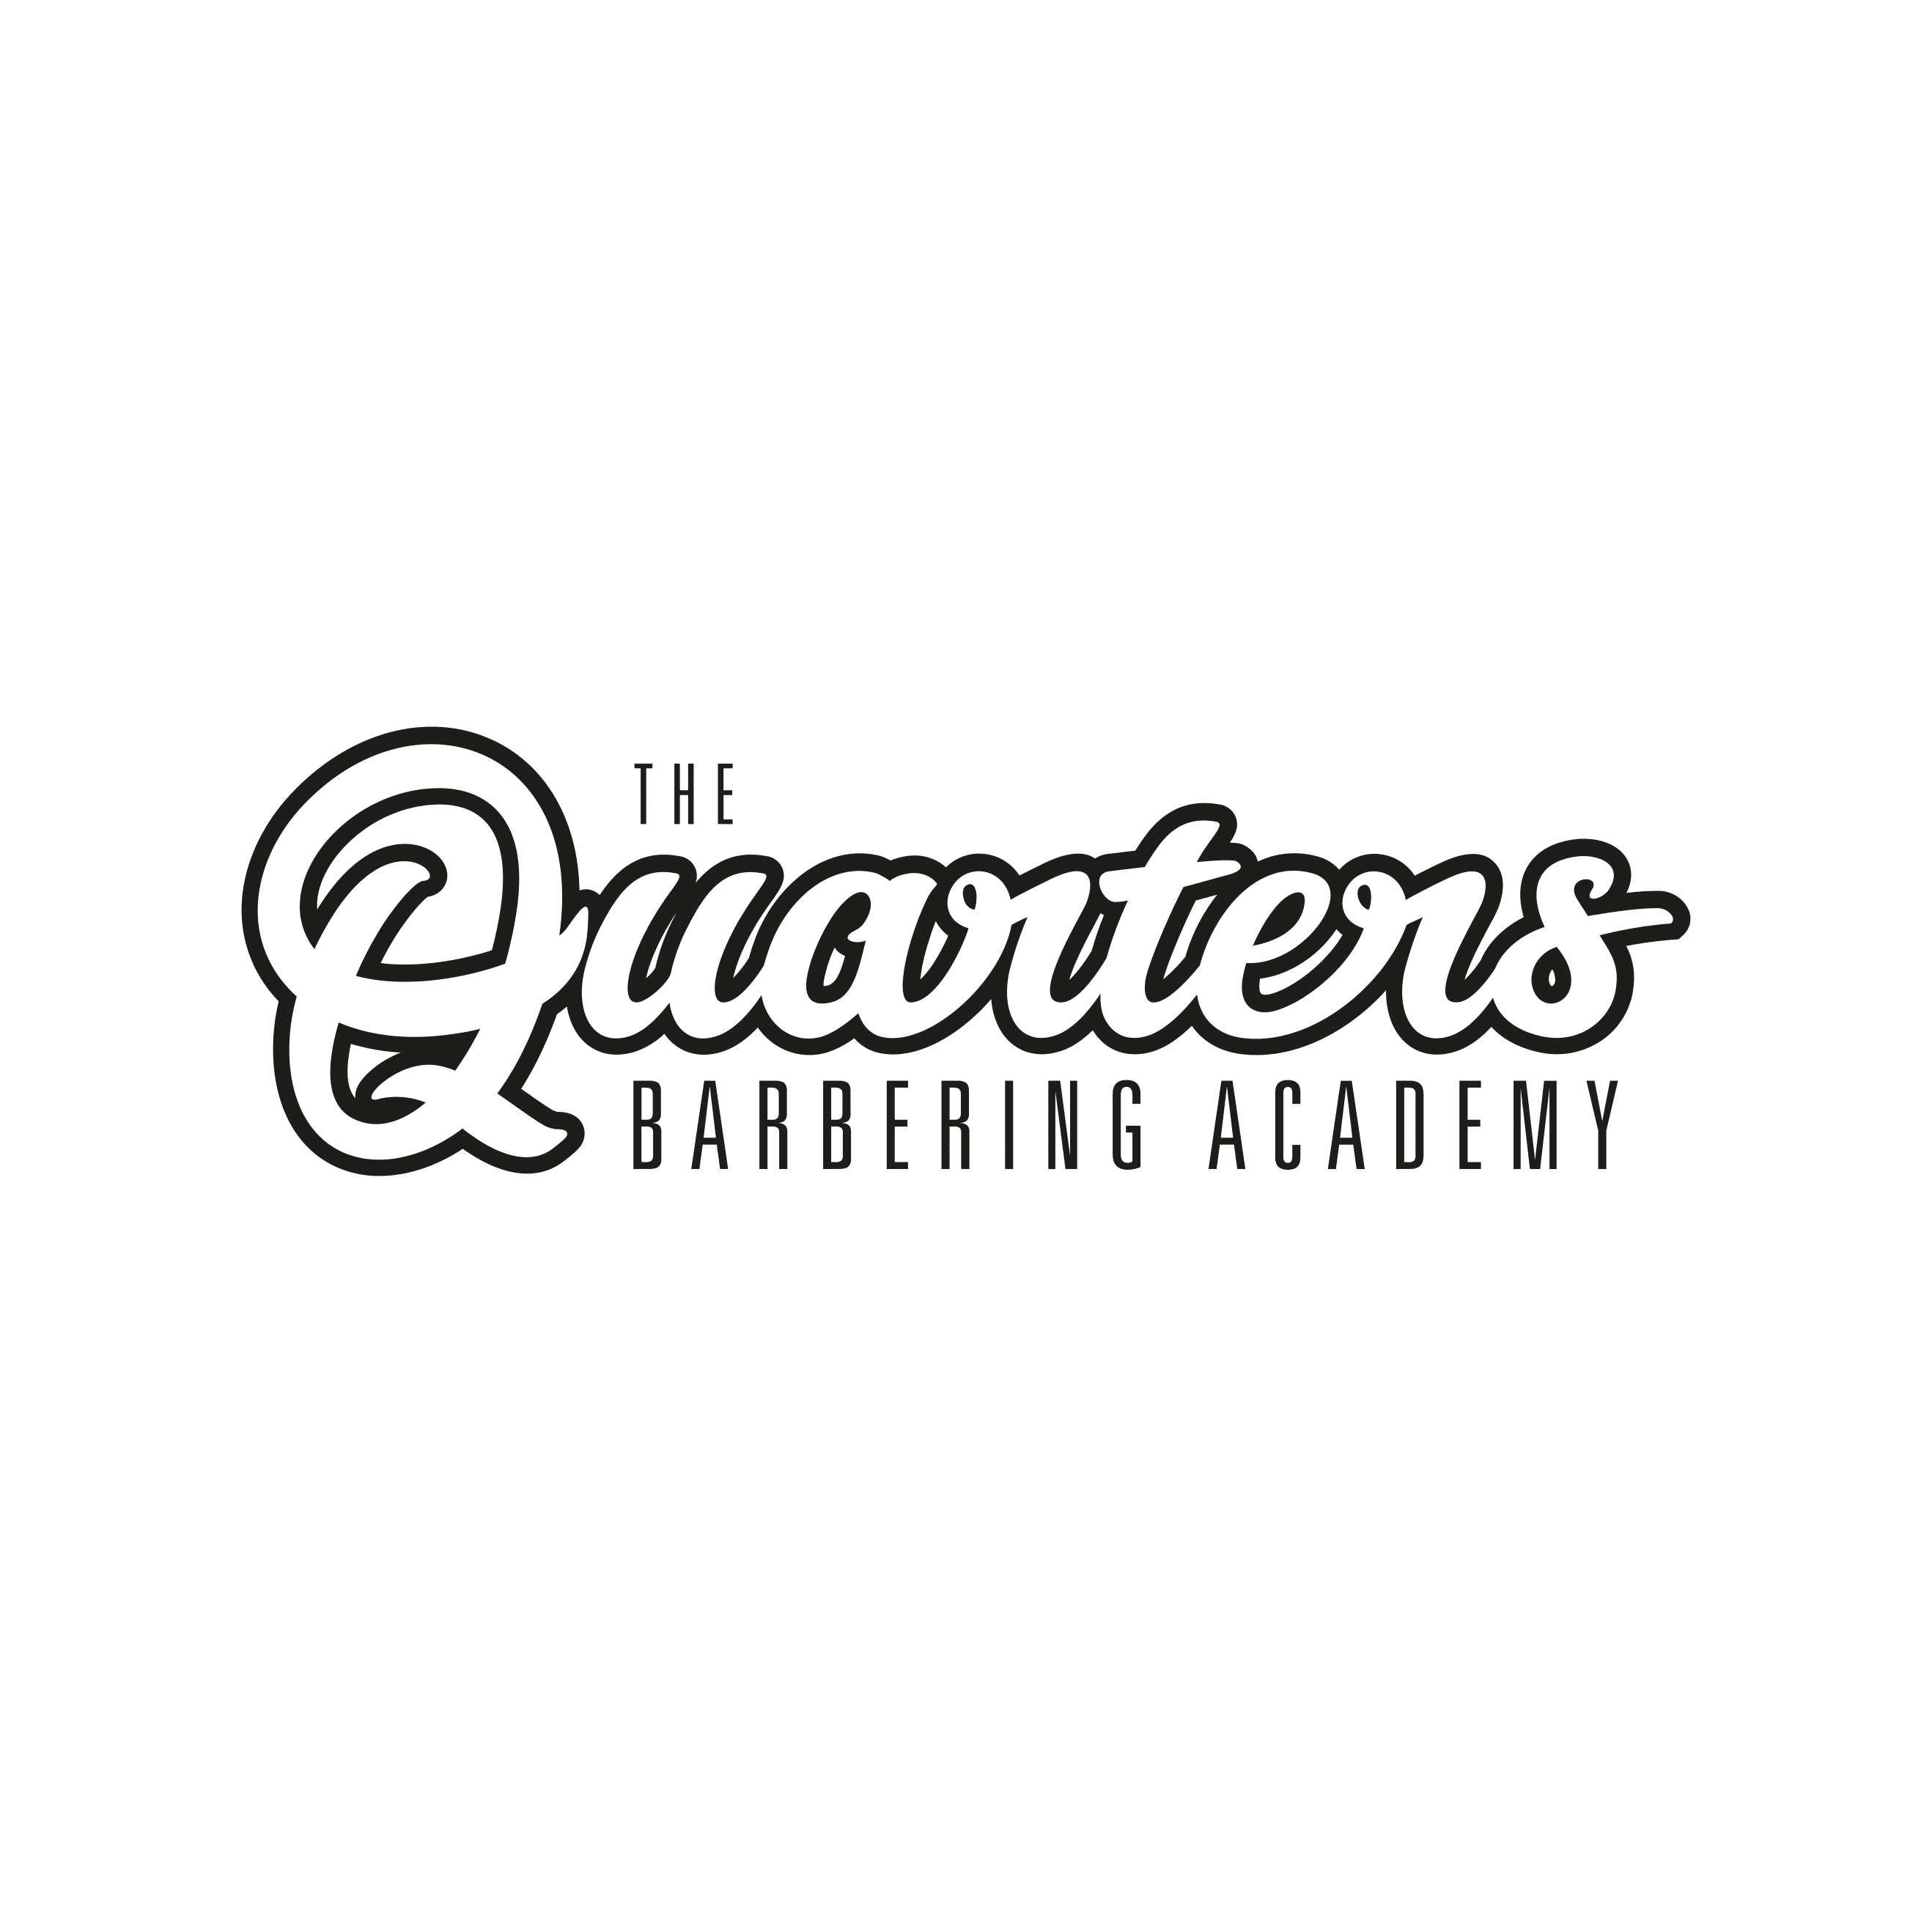 The Quarters Barbering Academy